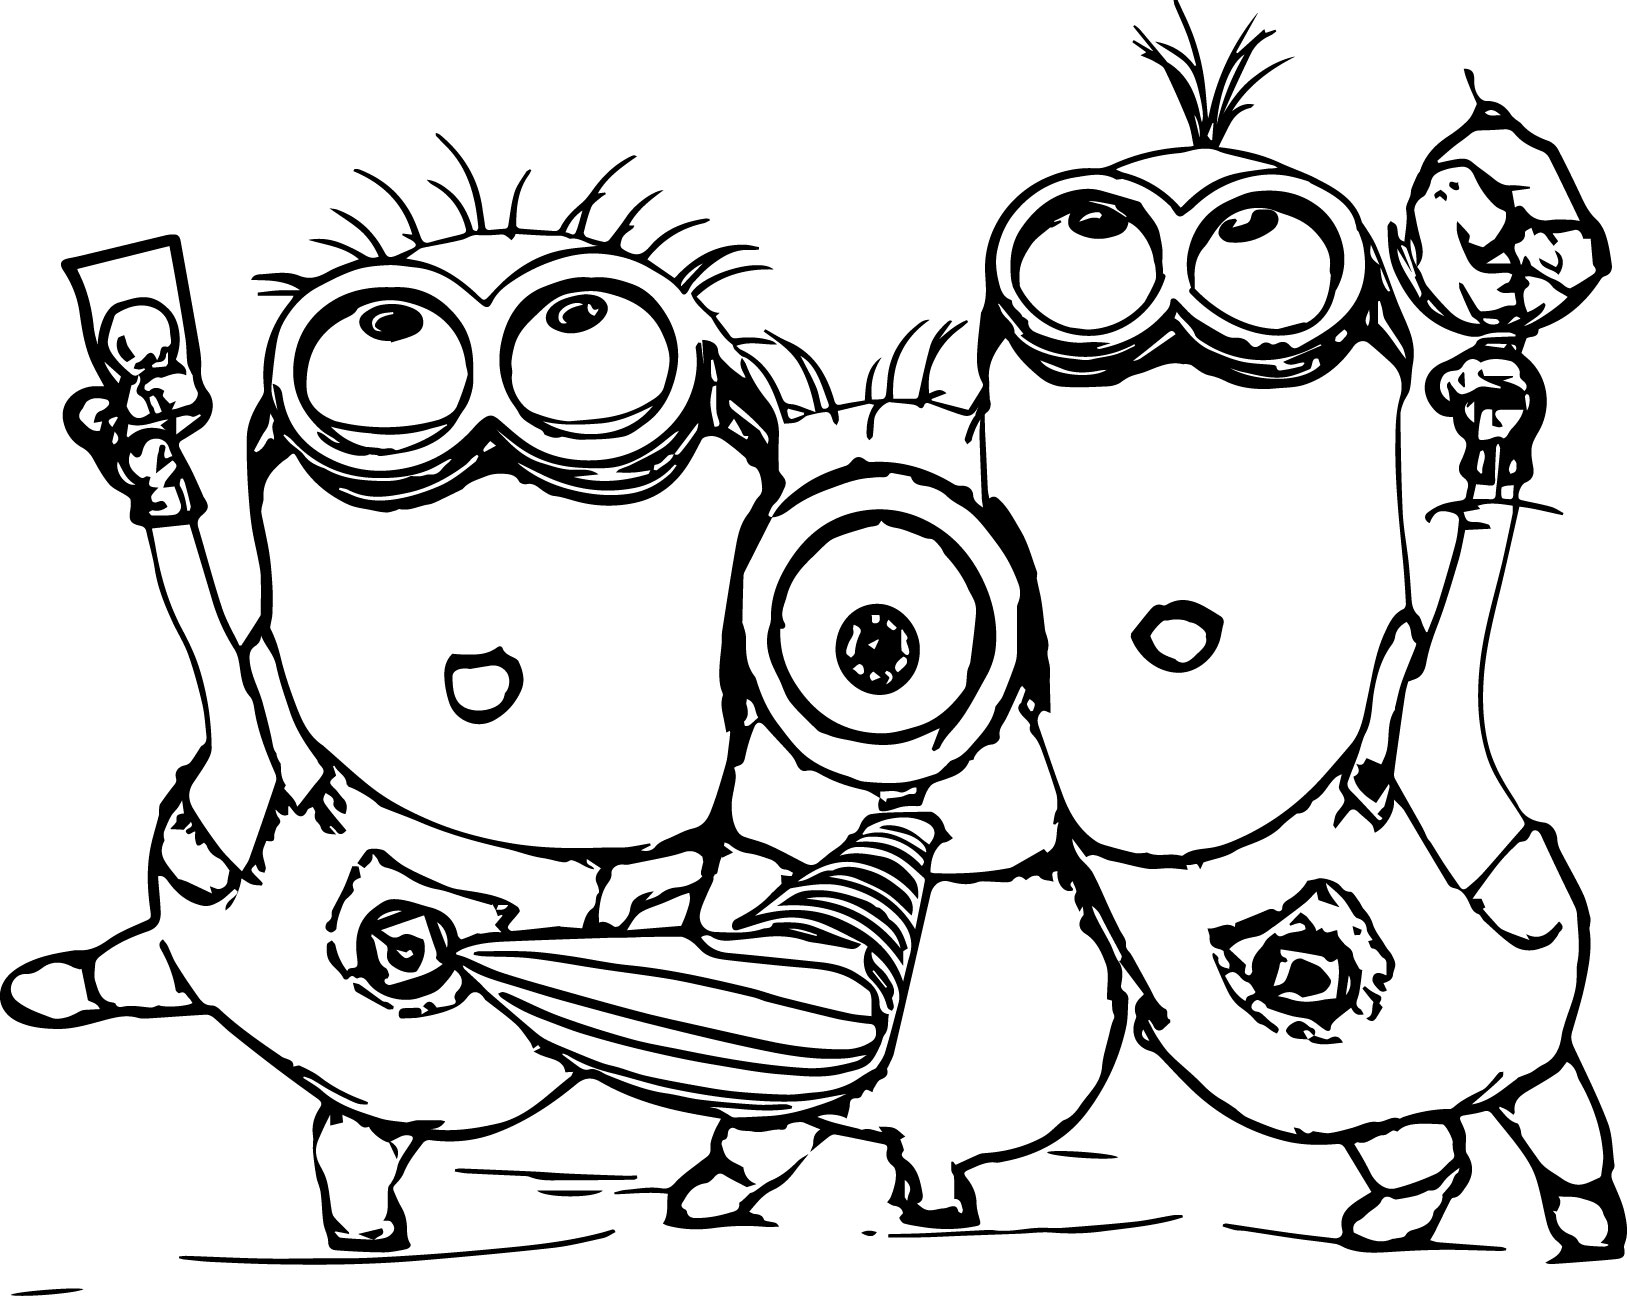 minion pictures to print cool minions coloring pages check more at http minion print to pictures